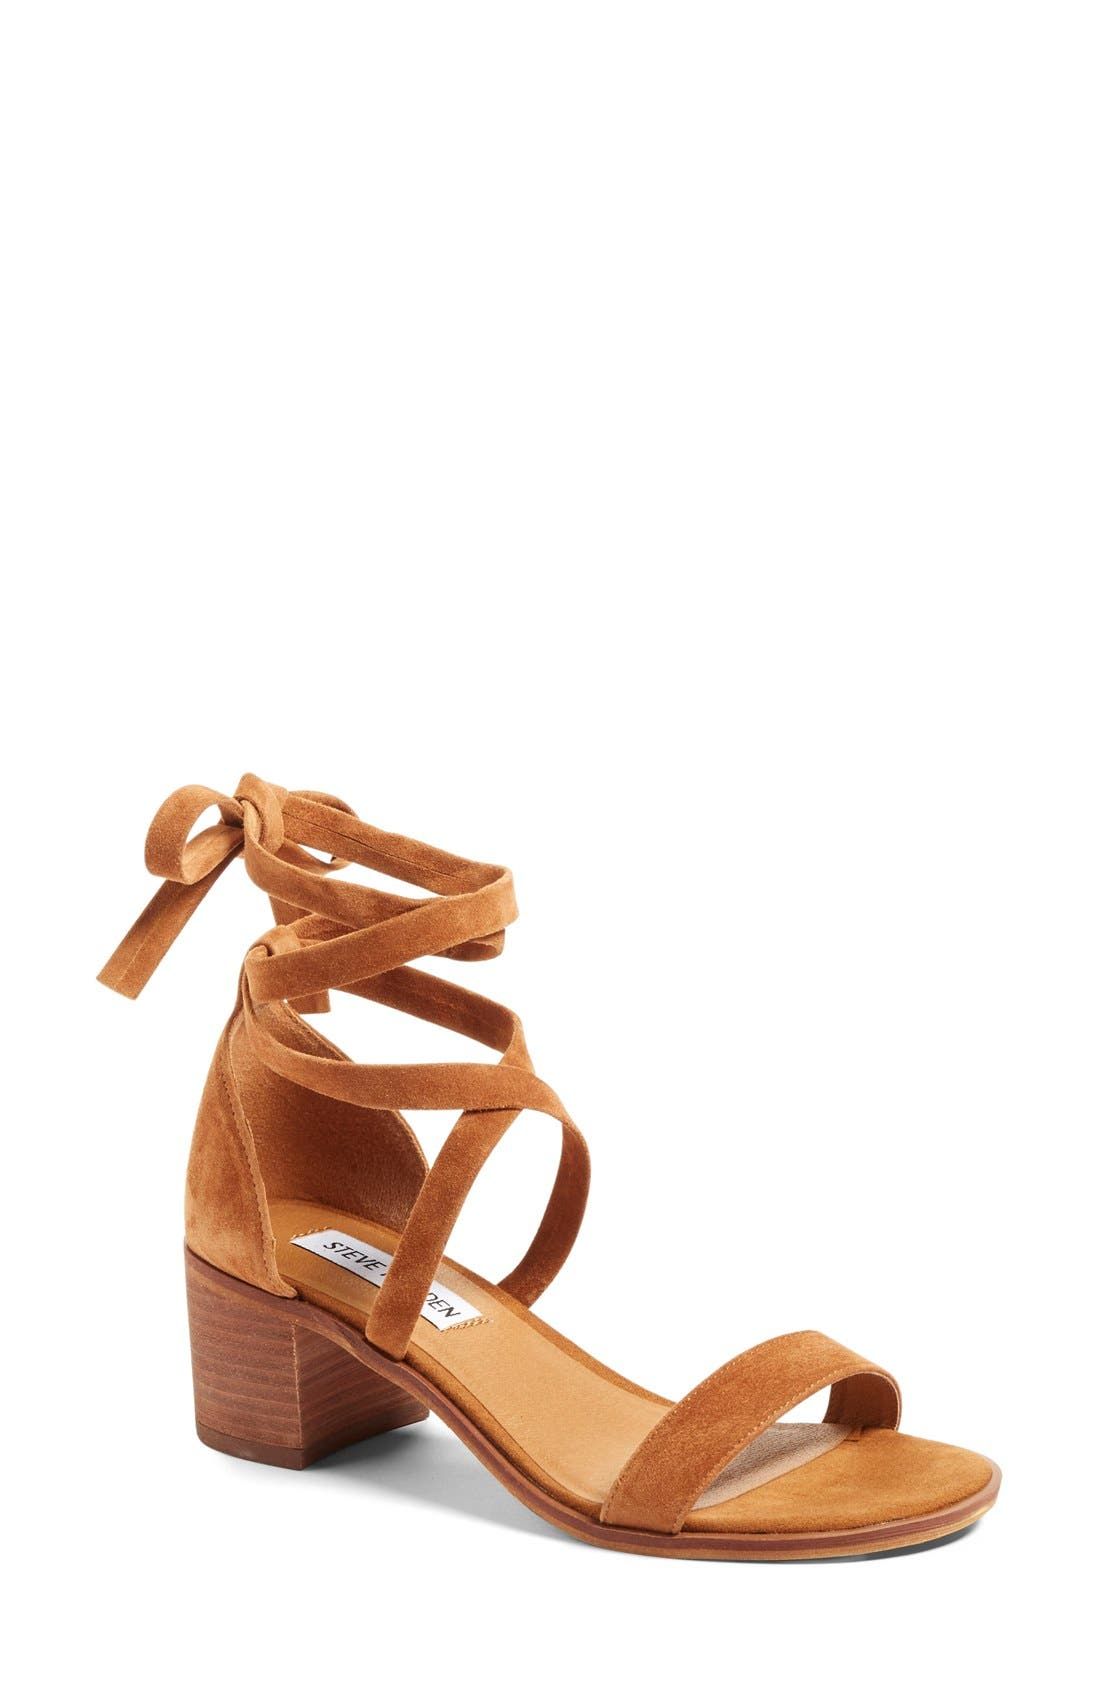 STEVE MADDEN 'Rizzaa' Ankle Strap Sandal, Main, color, 200